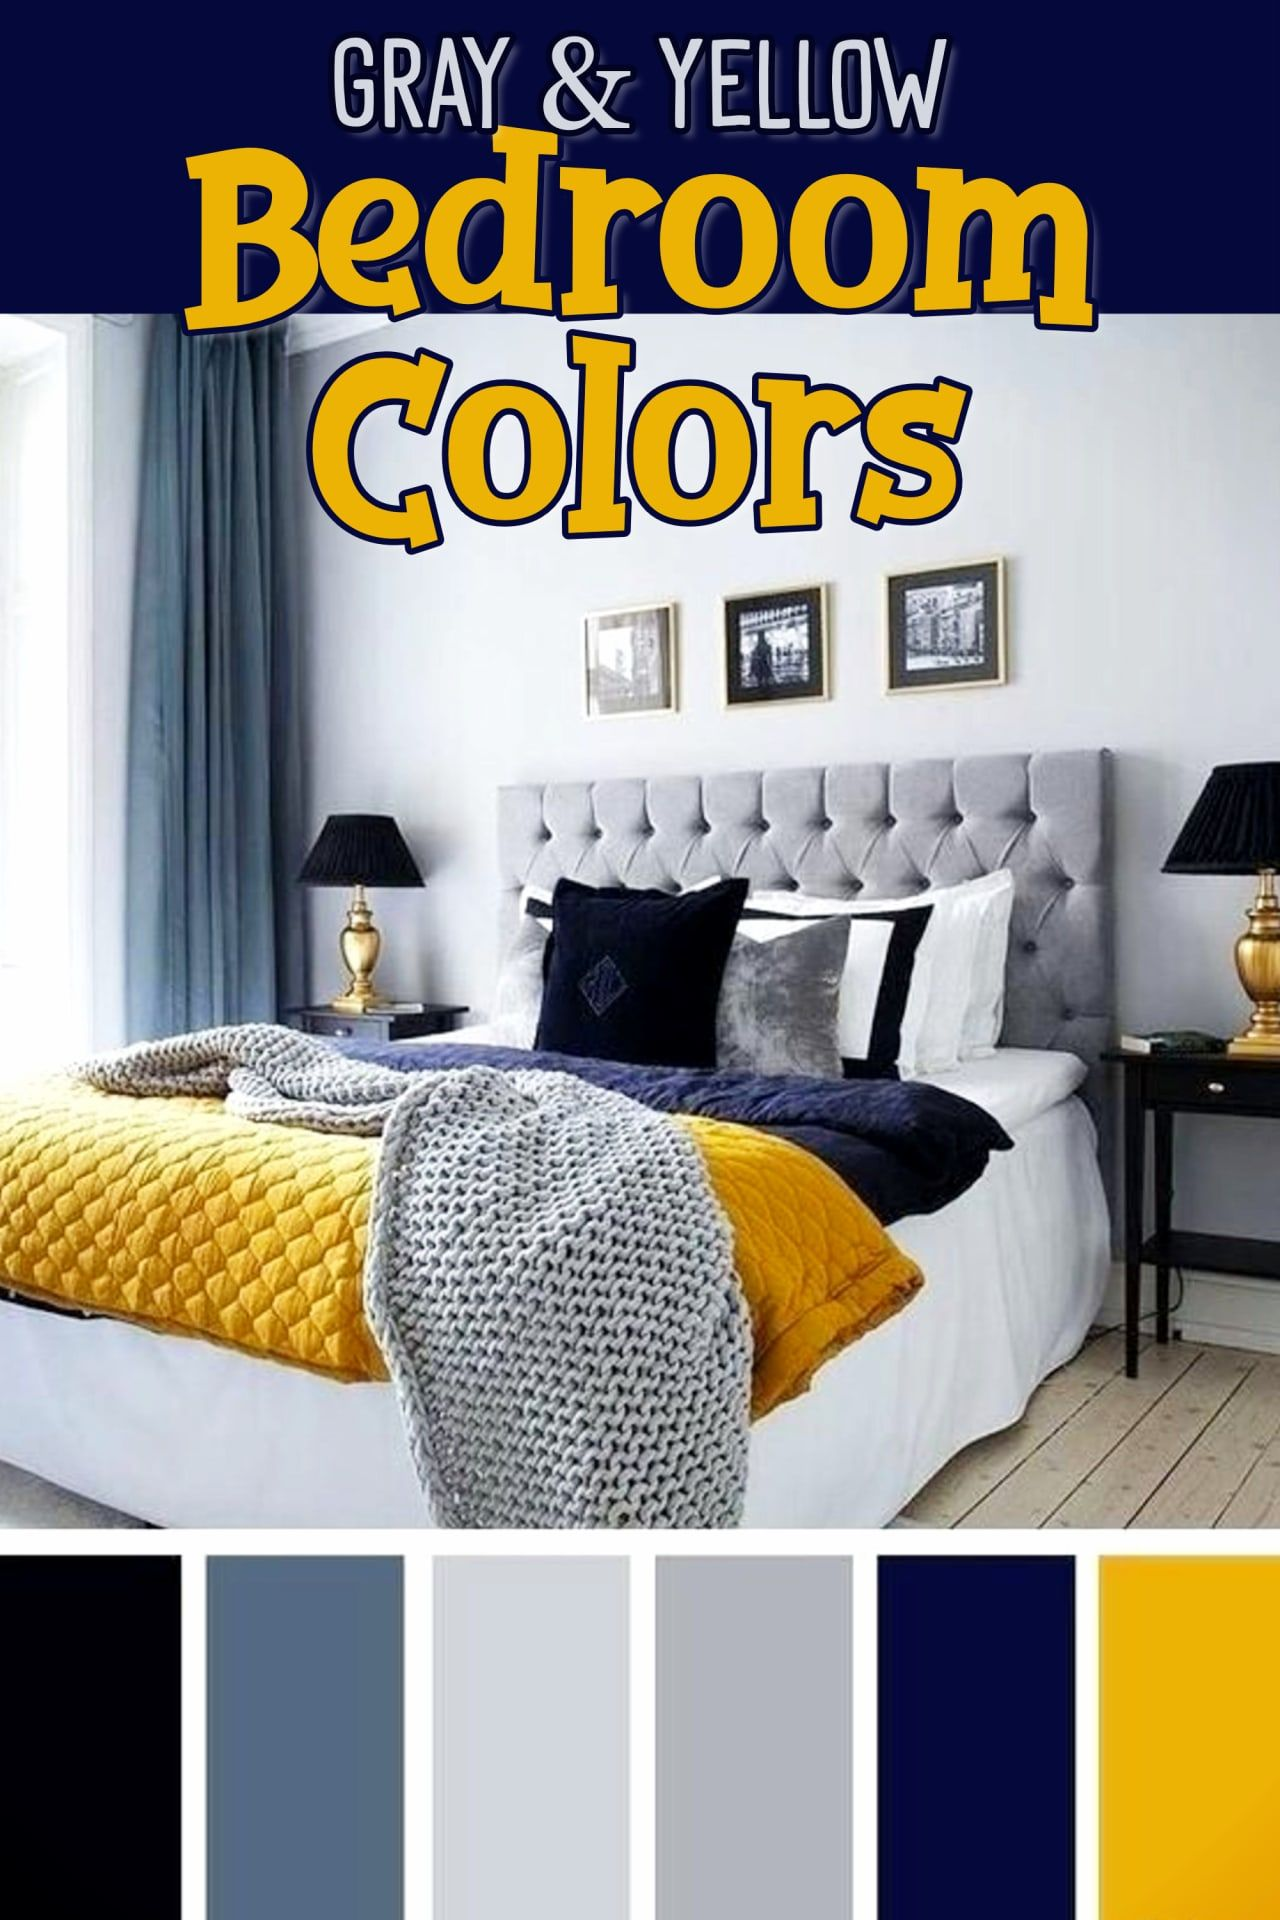 Gray And Yellow Bedroom Ideas Yellow And Grey Bedding Accent Colors Bedroom Decor Ideas Clever Diy Ideas Yellow Bedroom Decor Blue Yellow Bedrooms Yellow Master Bedroom